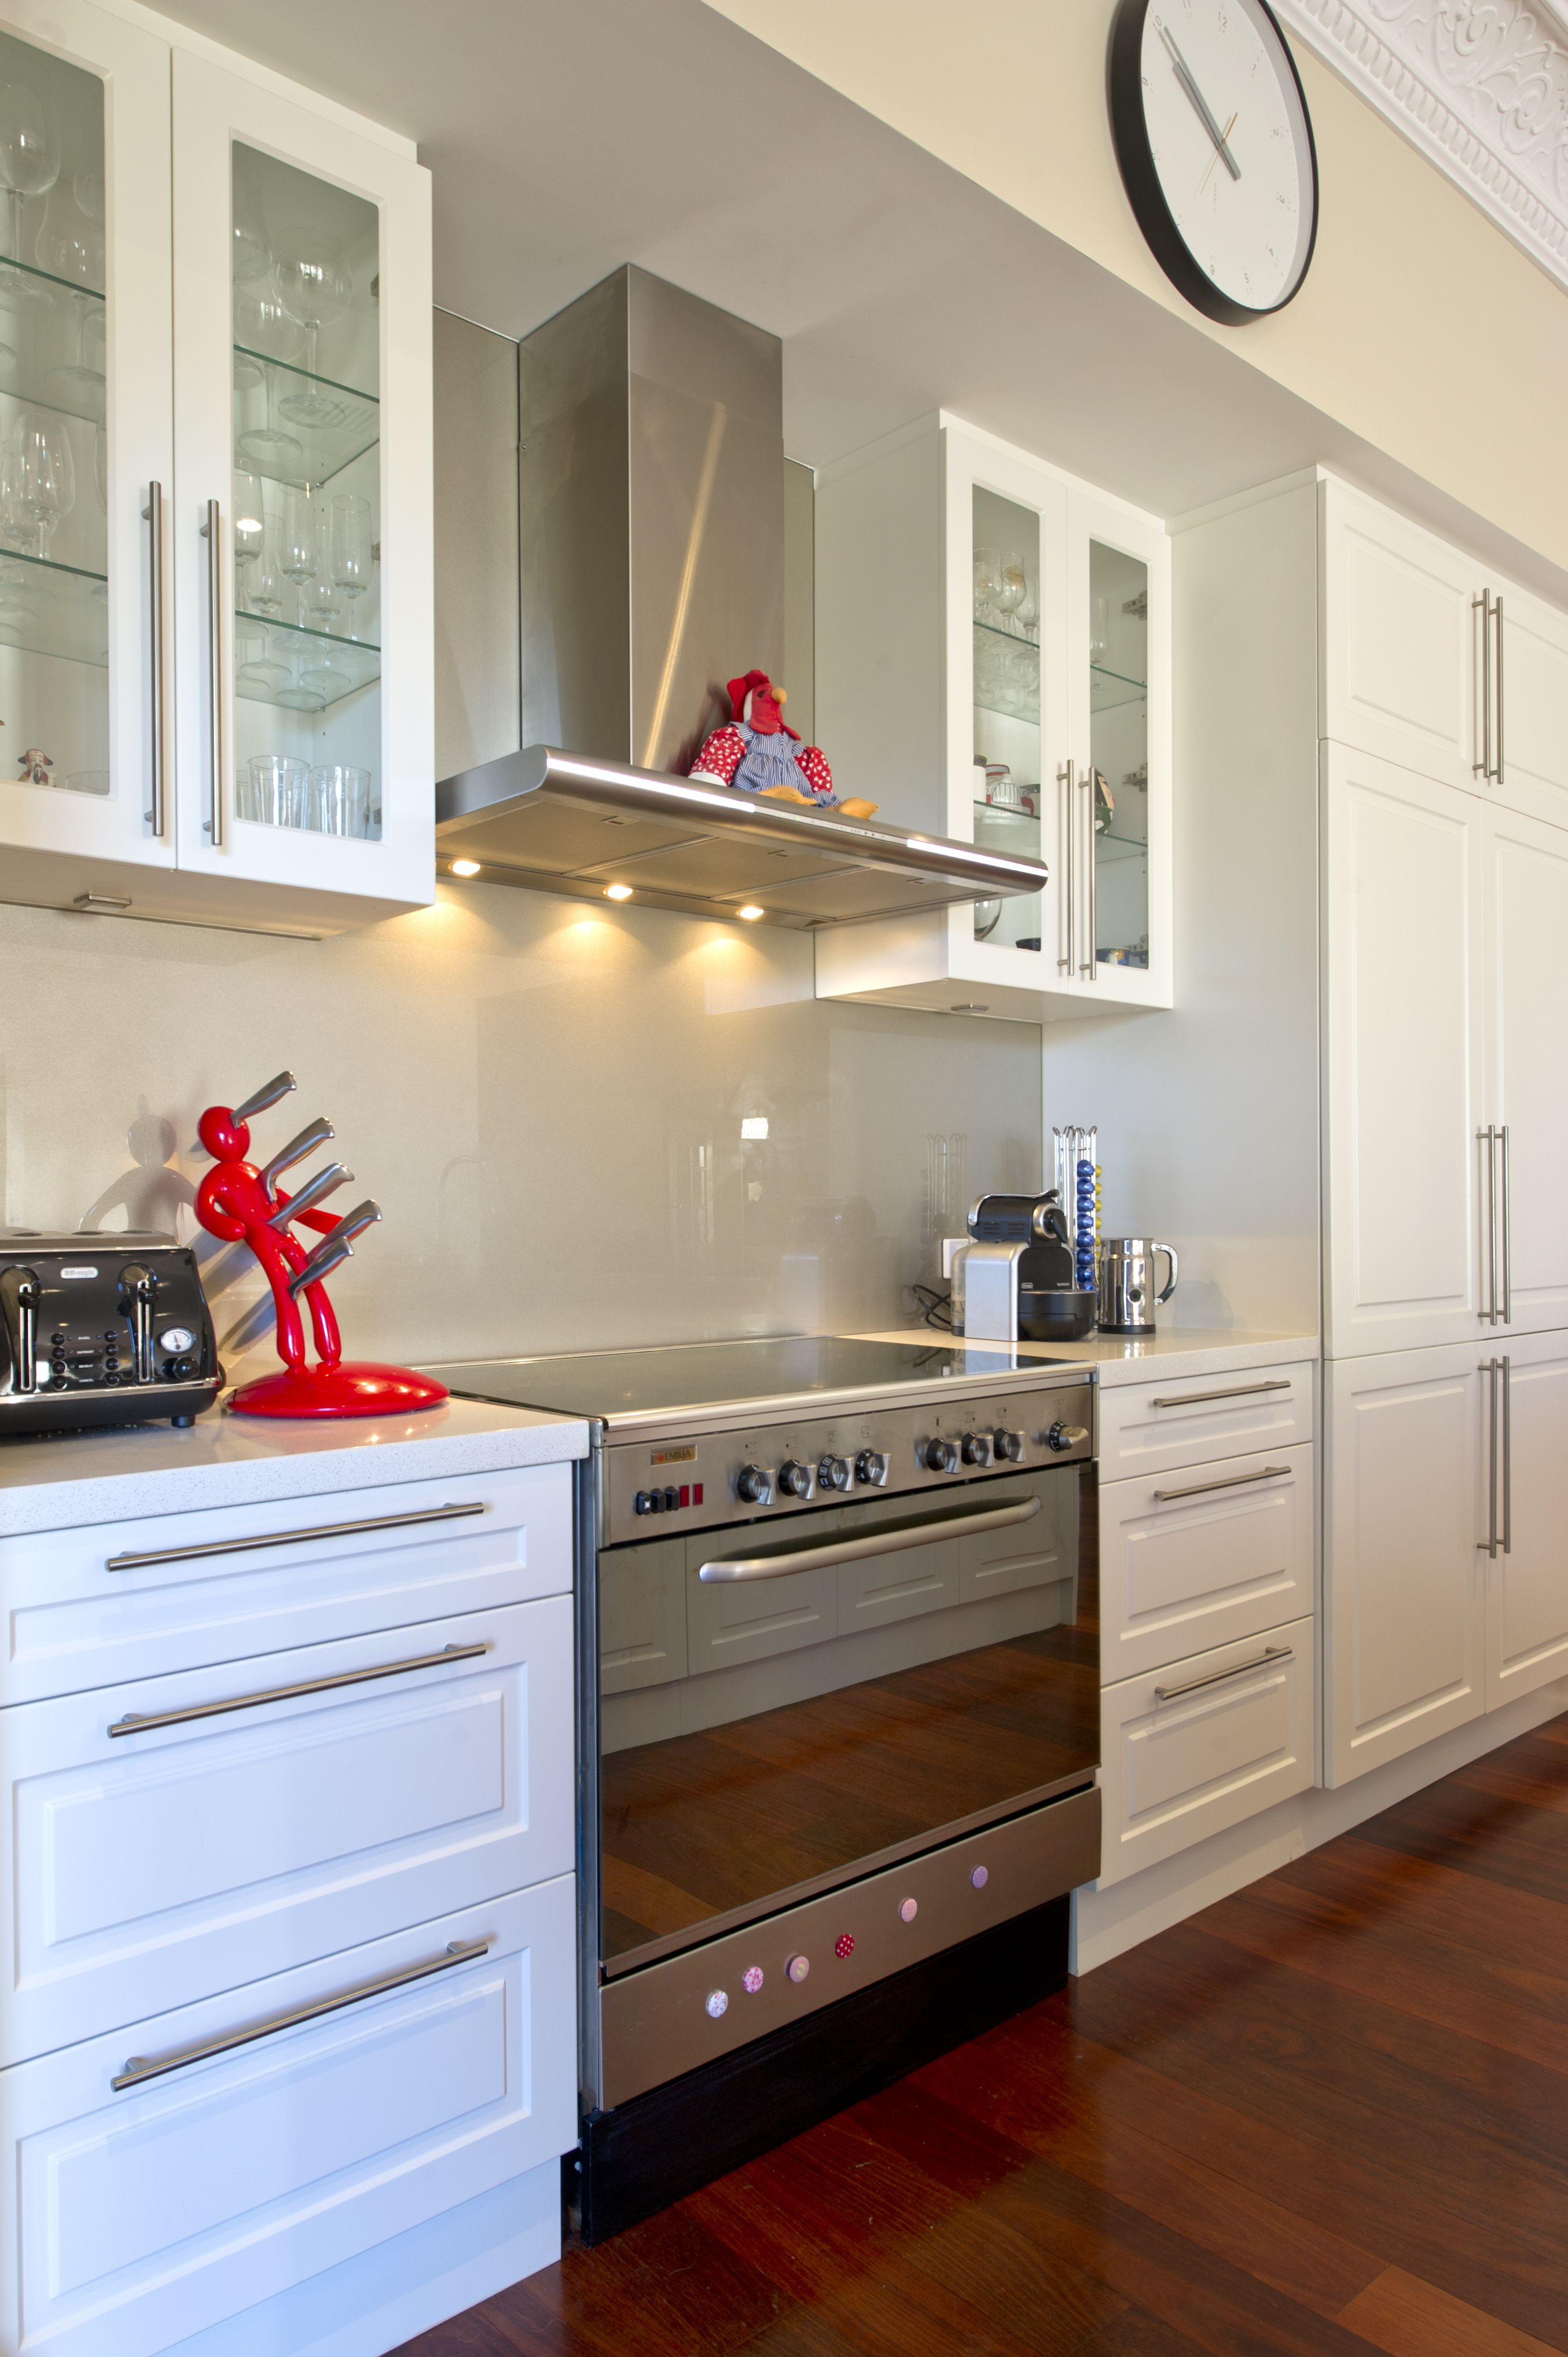 Crisp white kitchen with stainless steel appliances